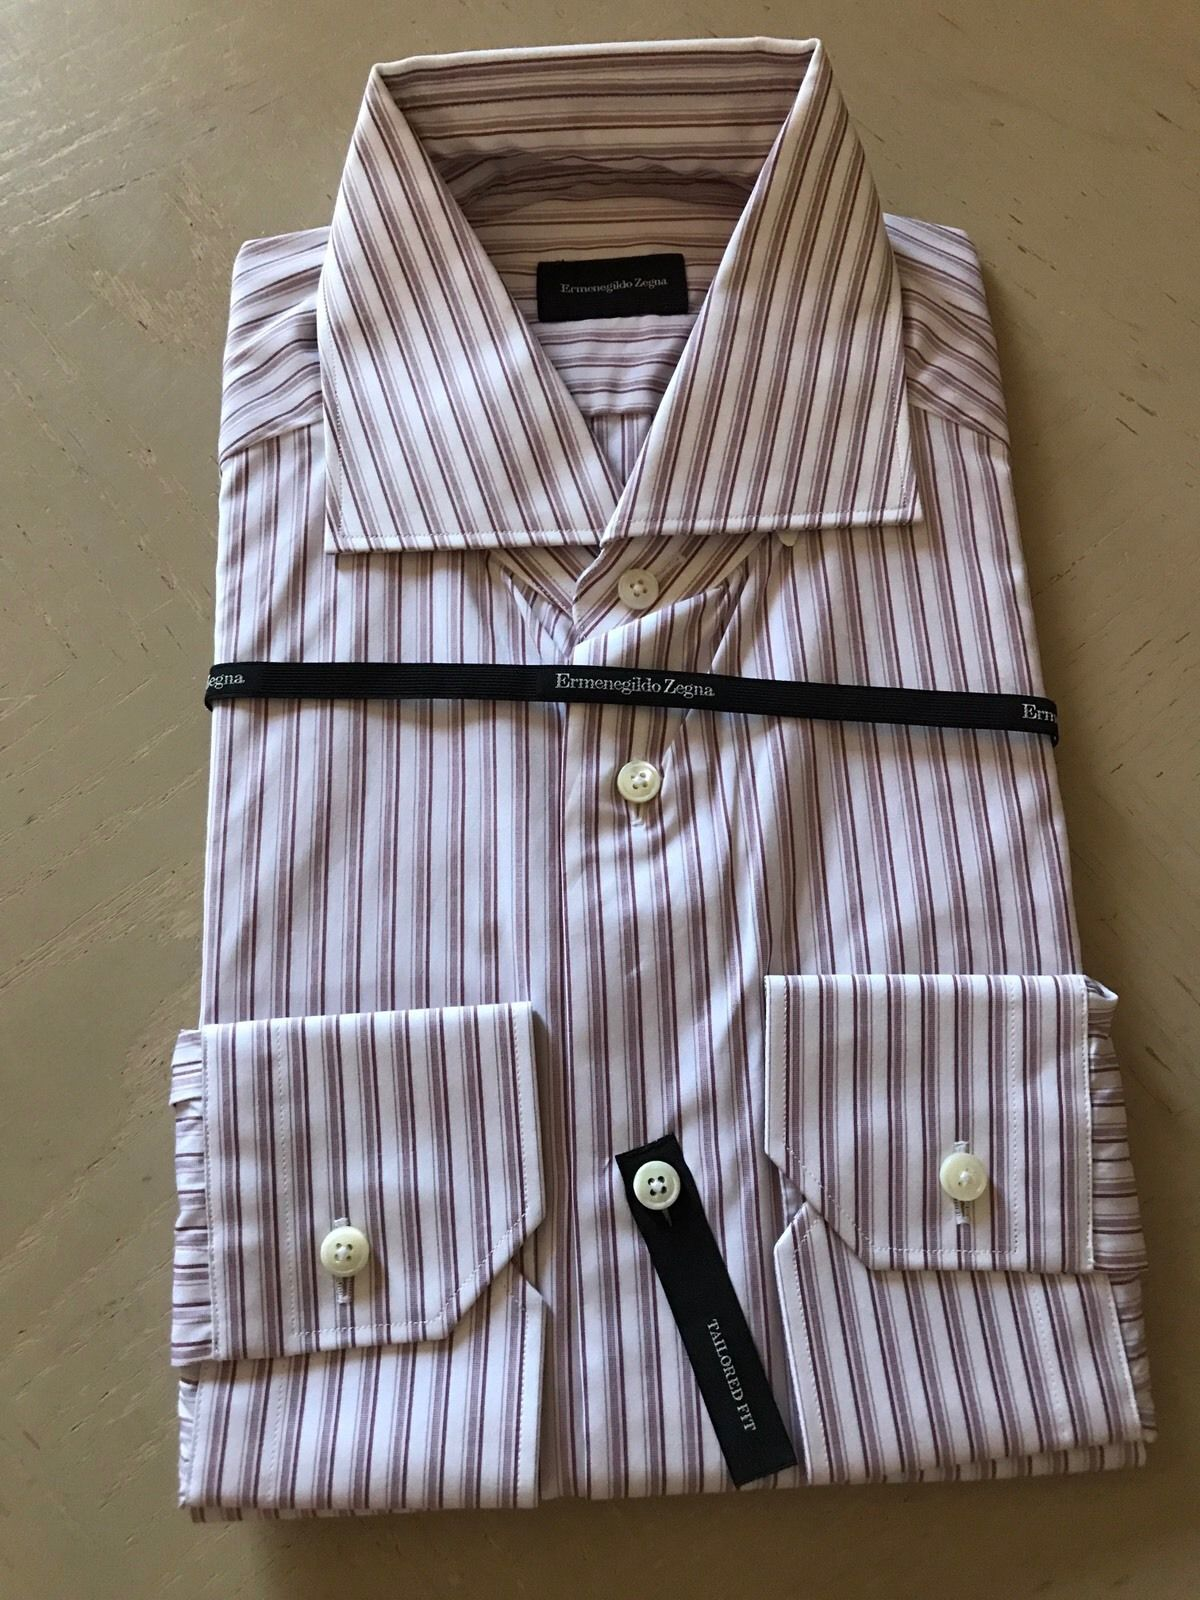 New $375 Ermenegildo Zegna Dress Shirt Red Striped Size 38/15 - BAYSUPERSTORE